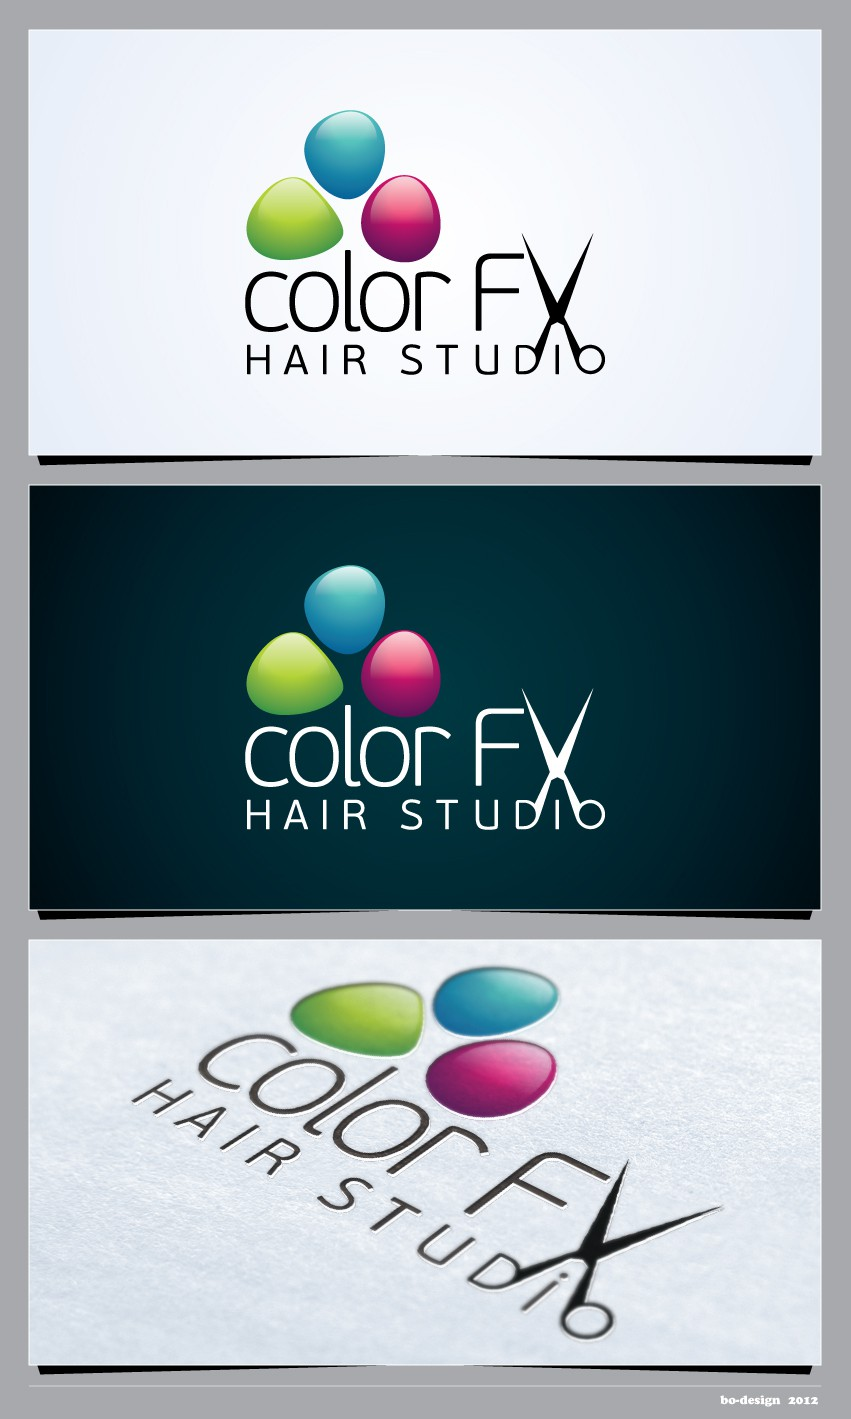 Create the next logo for Color FX